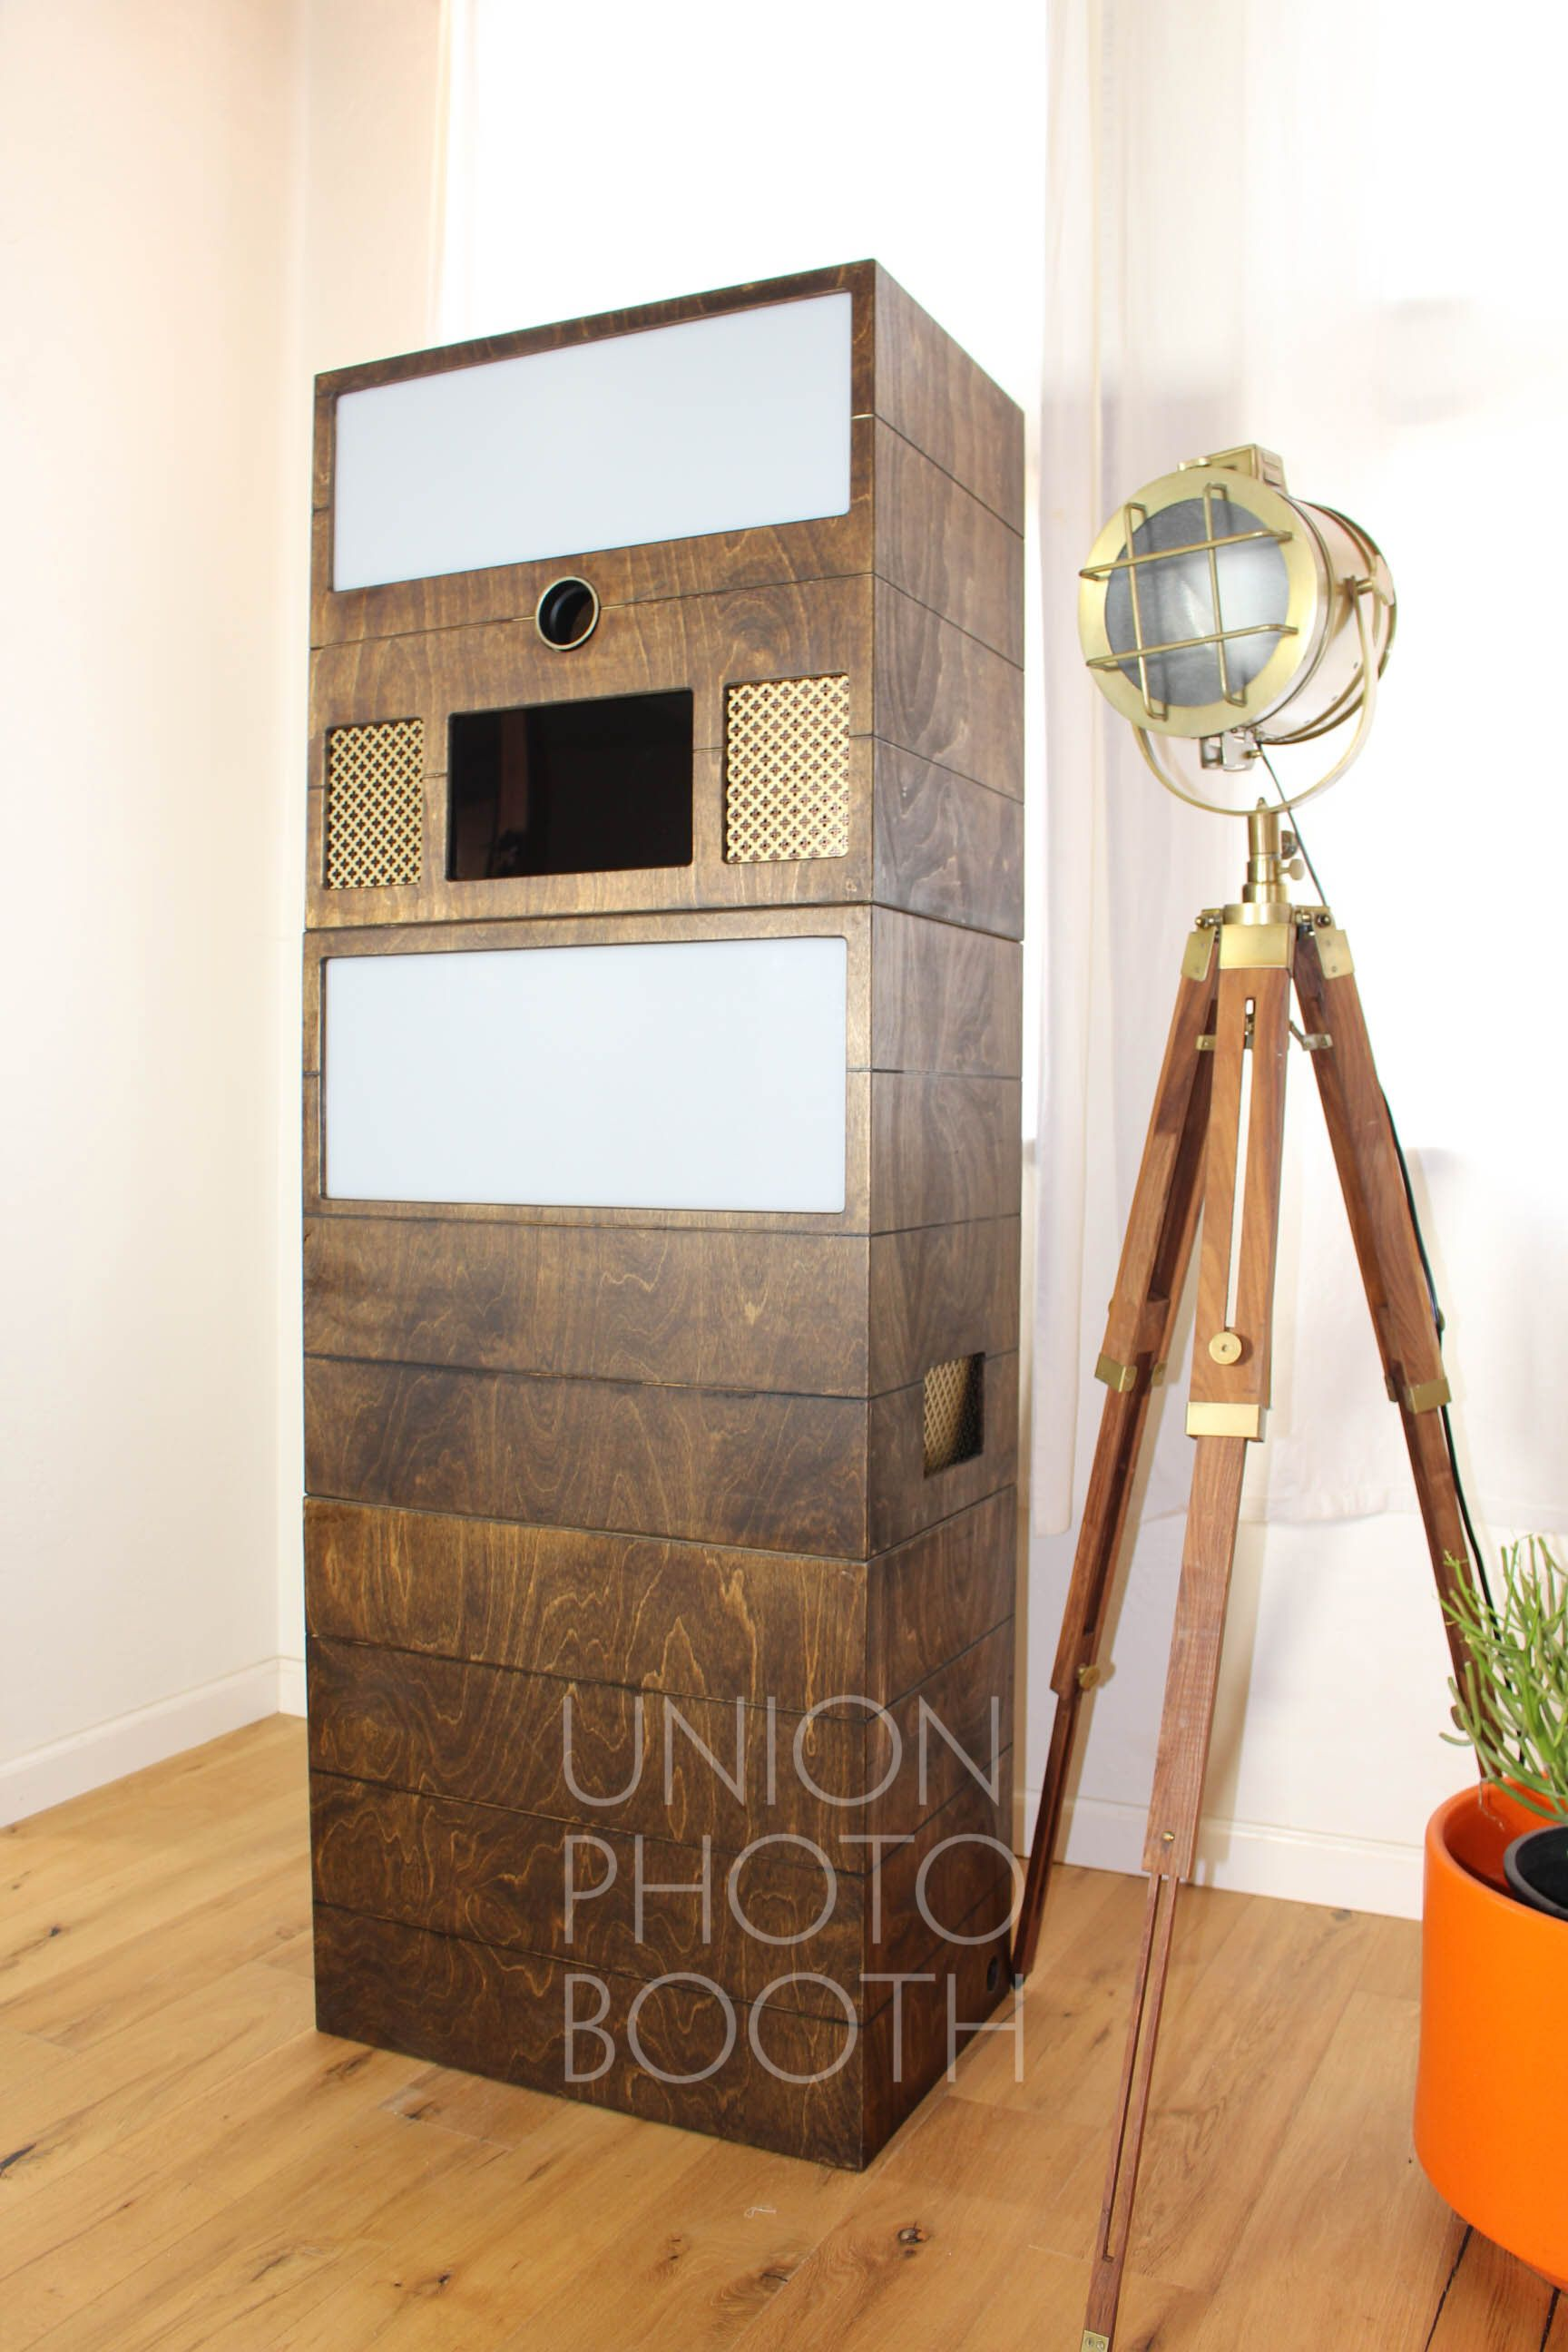 Union Booth Open style booth Vintage style wedding photo